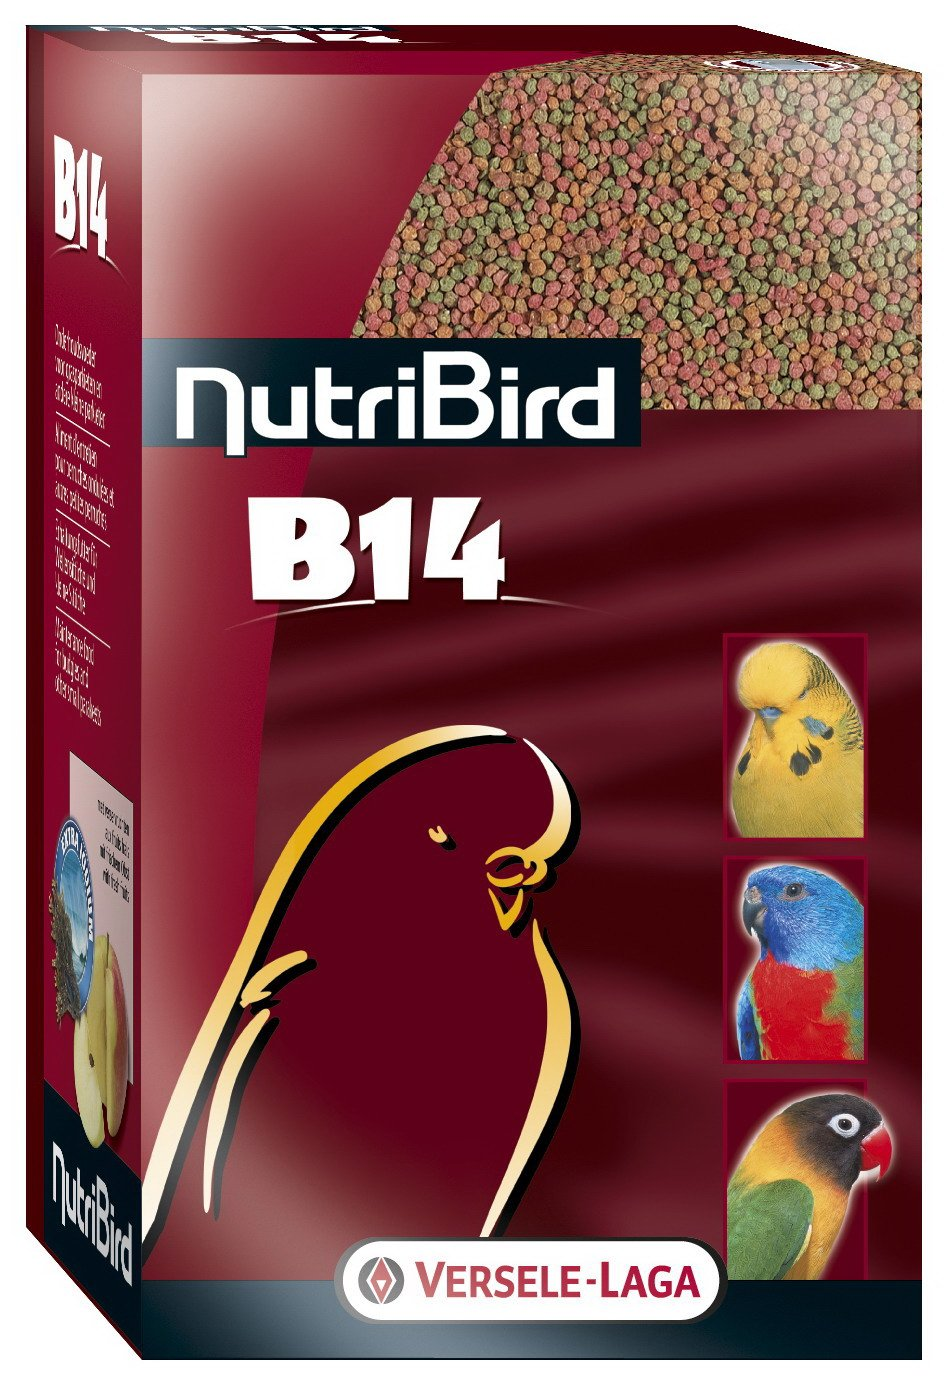 Aliments NutriBird B14 Versele Laga pour perruches A-16820